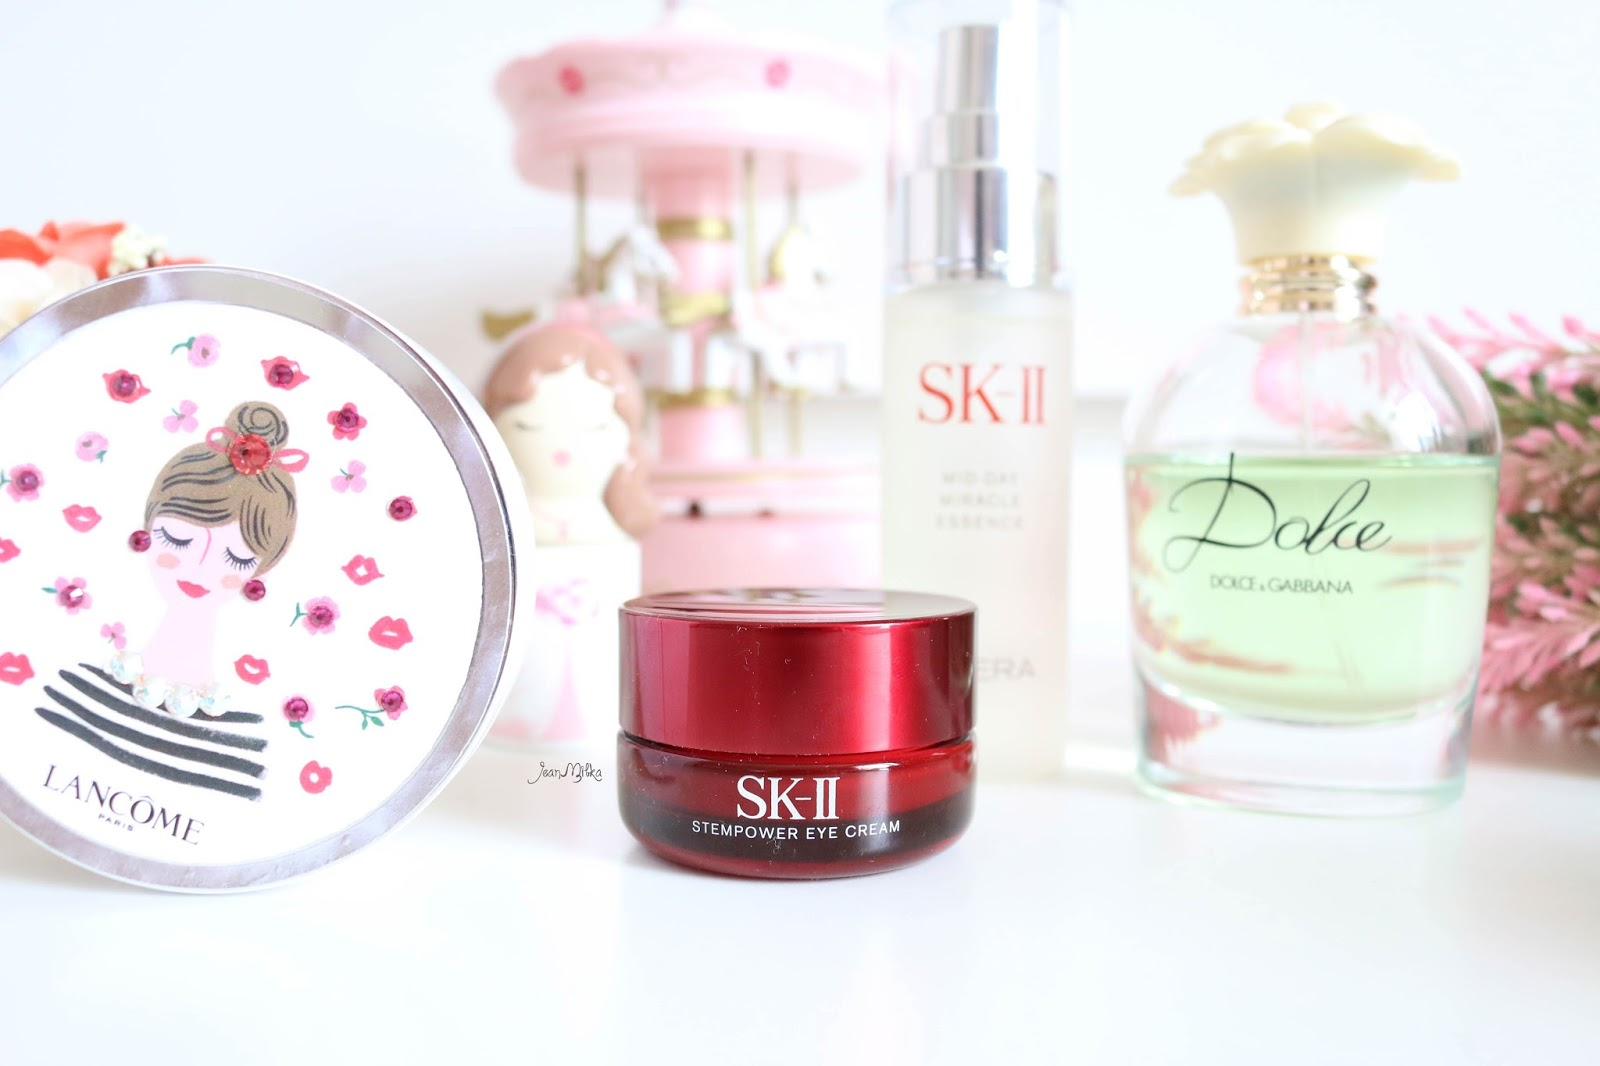 skii, sk ii, skii eye cream, eye cream, skii stempower, stempower, review, beauty blog, skin care, skii stempower eye cream